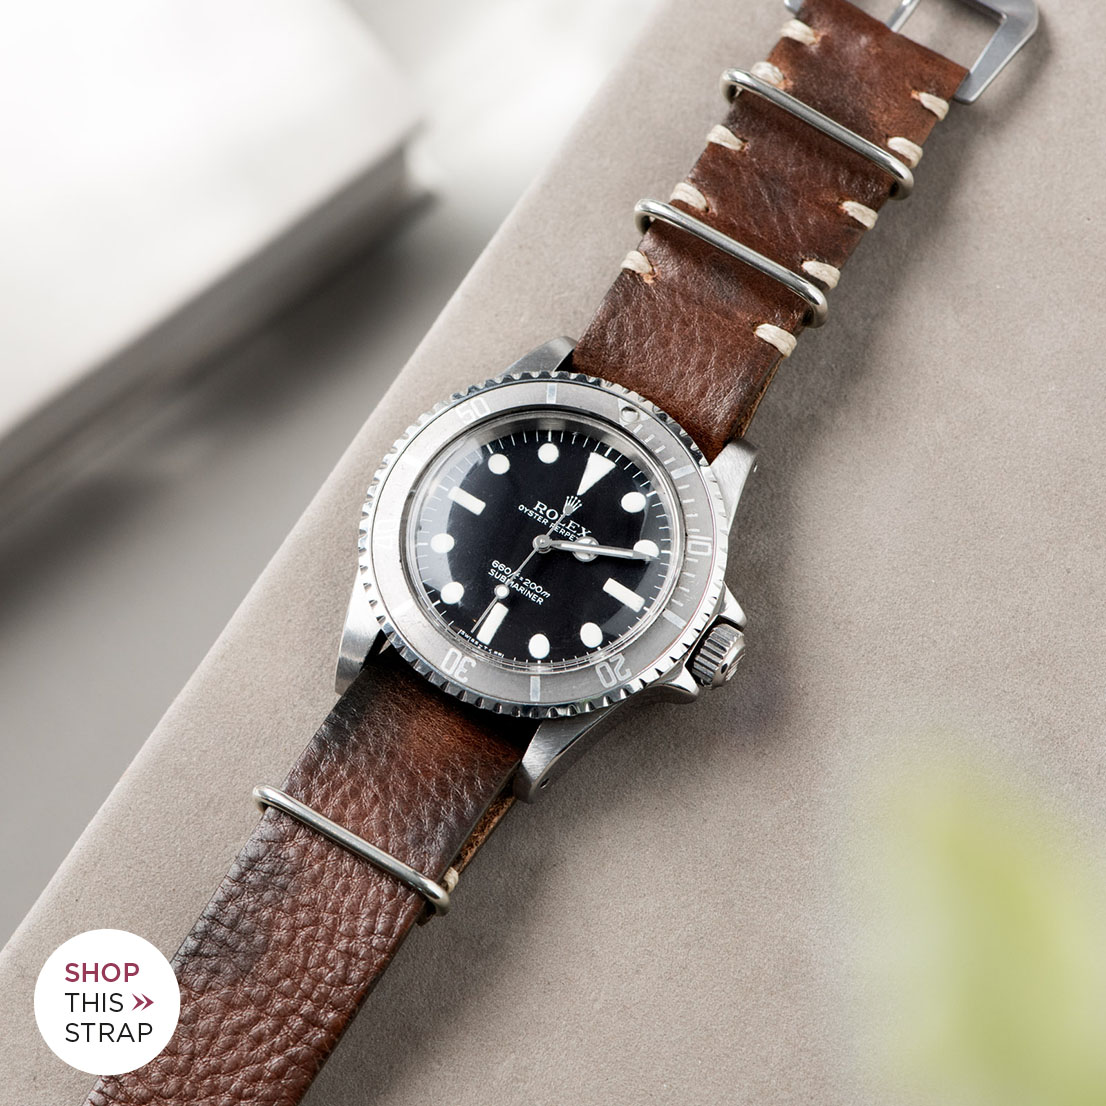 Bulang and Sons_Strap Guide_Rolex Submariner 5513 Faded_LUMBERJACK BROWN NATO LEATHER WACHT STRAP